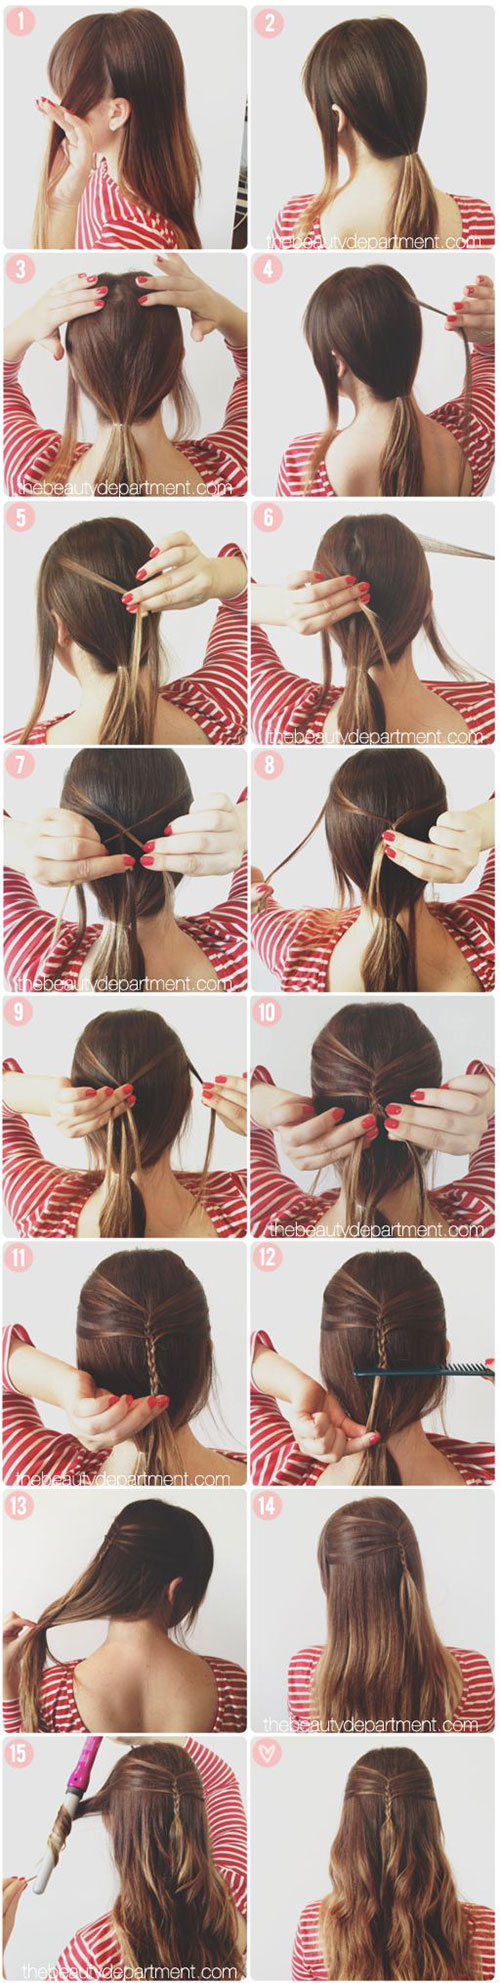 20-Easy-Step-By-Step-Summer-Braids-Style-Tutorials-For-Beginners-2015-17